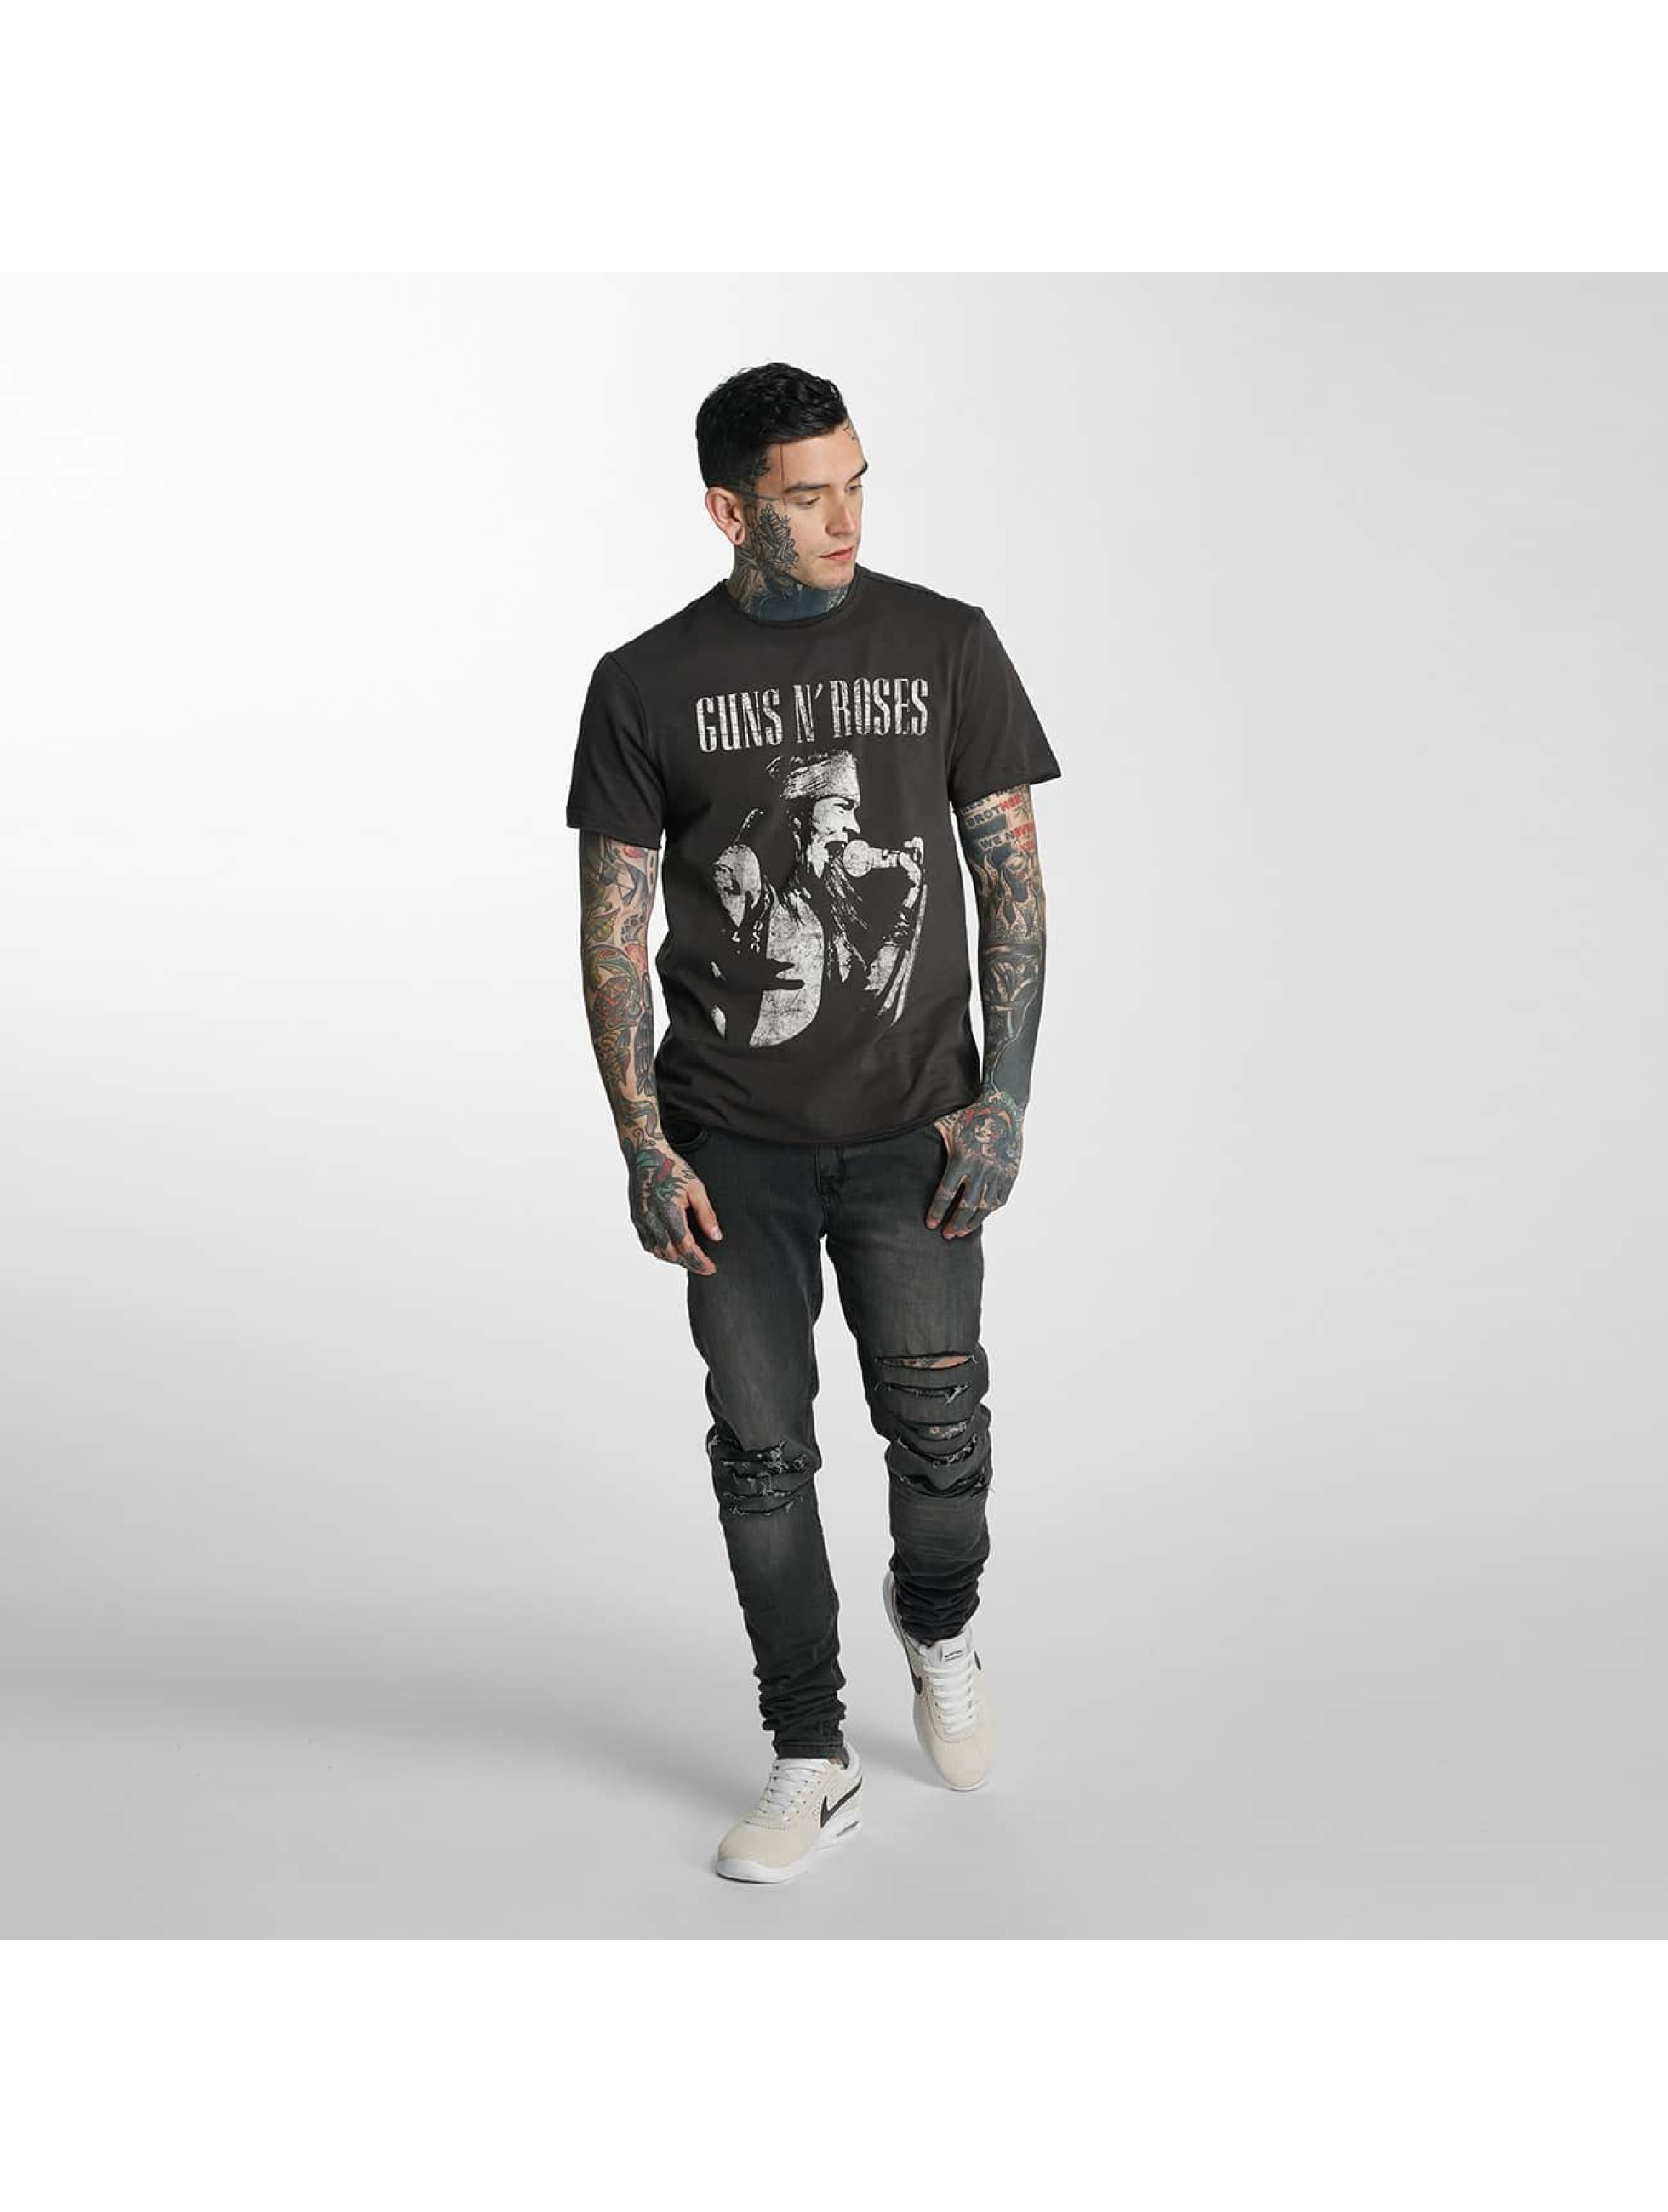 Amplified T-Shirt Guns & Roses Axel Life Profile gray